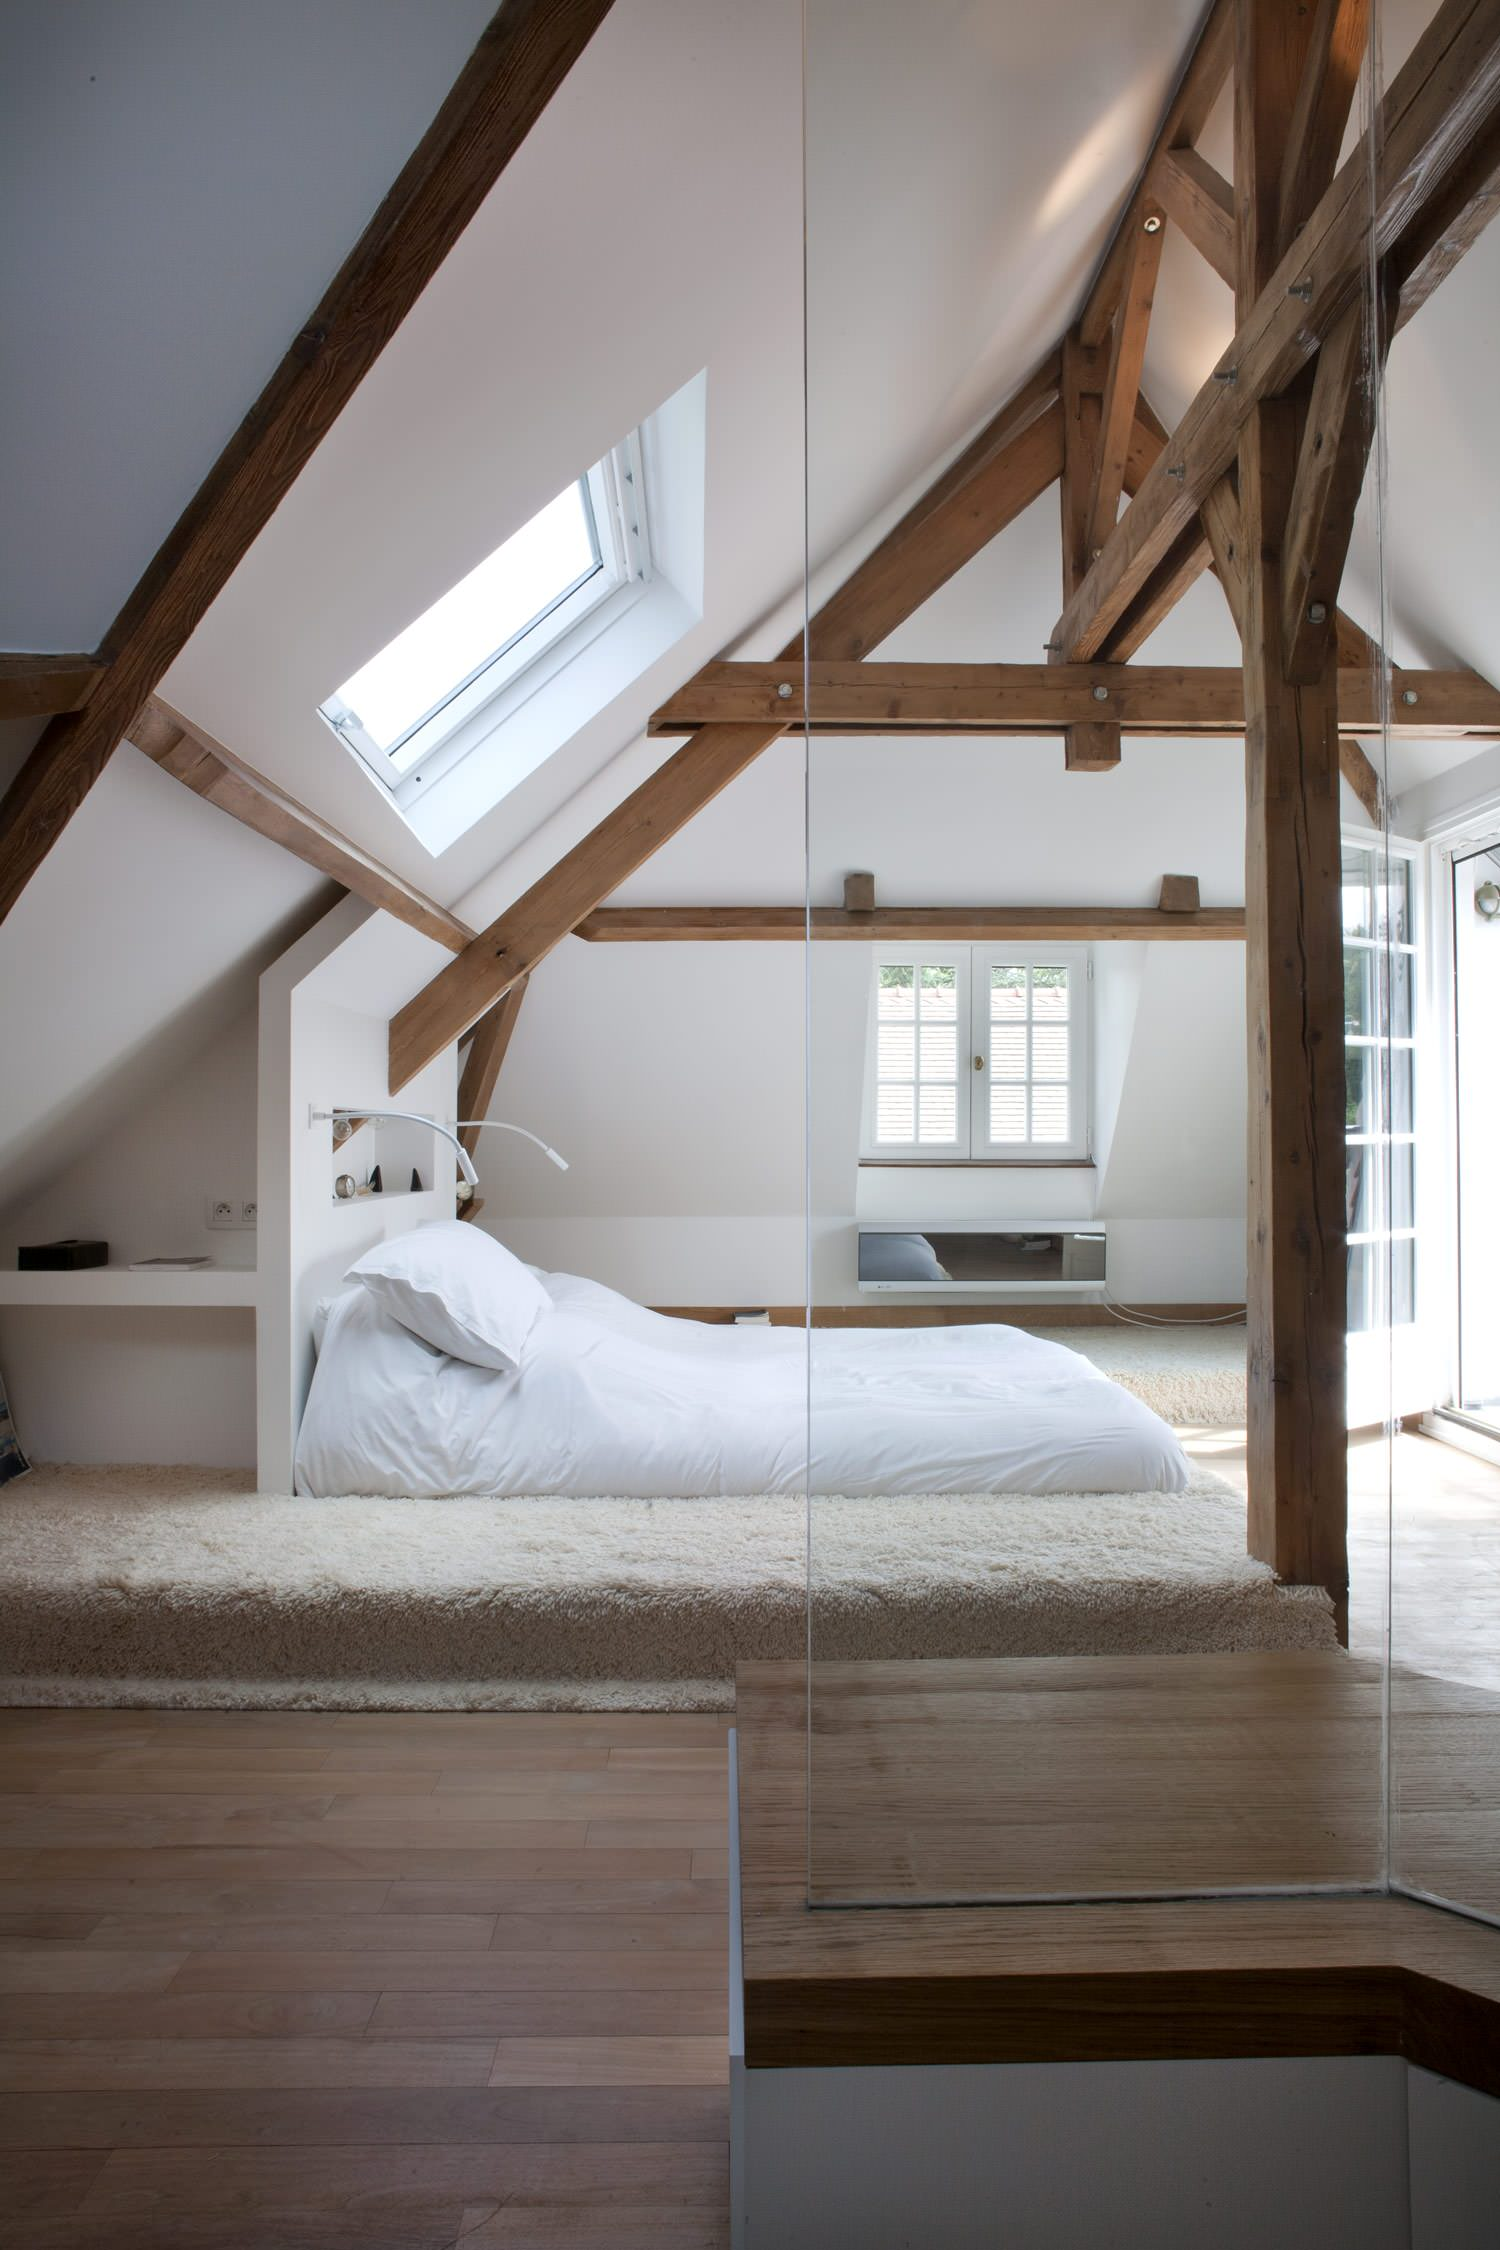 75 Beautiful Loft Style Bedroom Pictures Ideas March 2021 Houzz